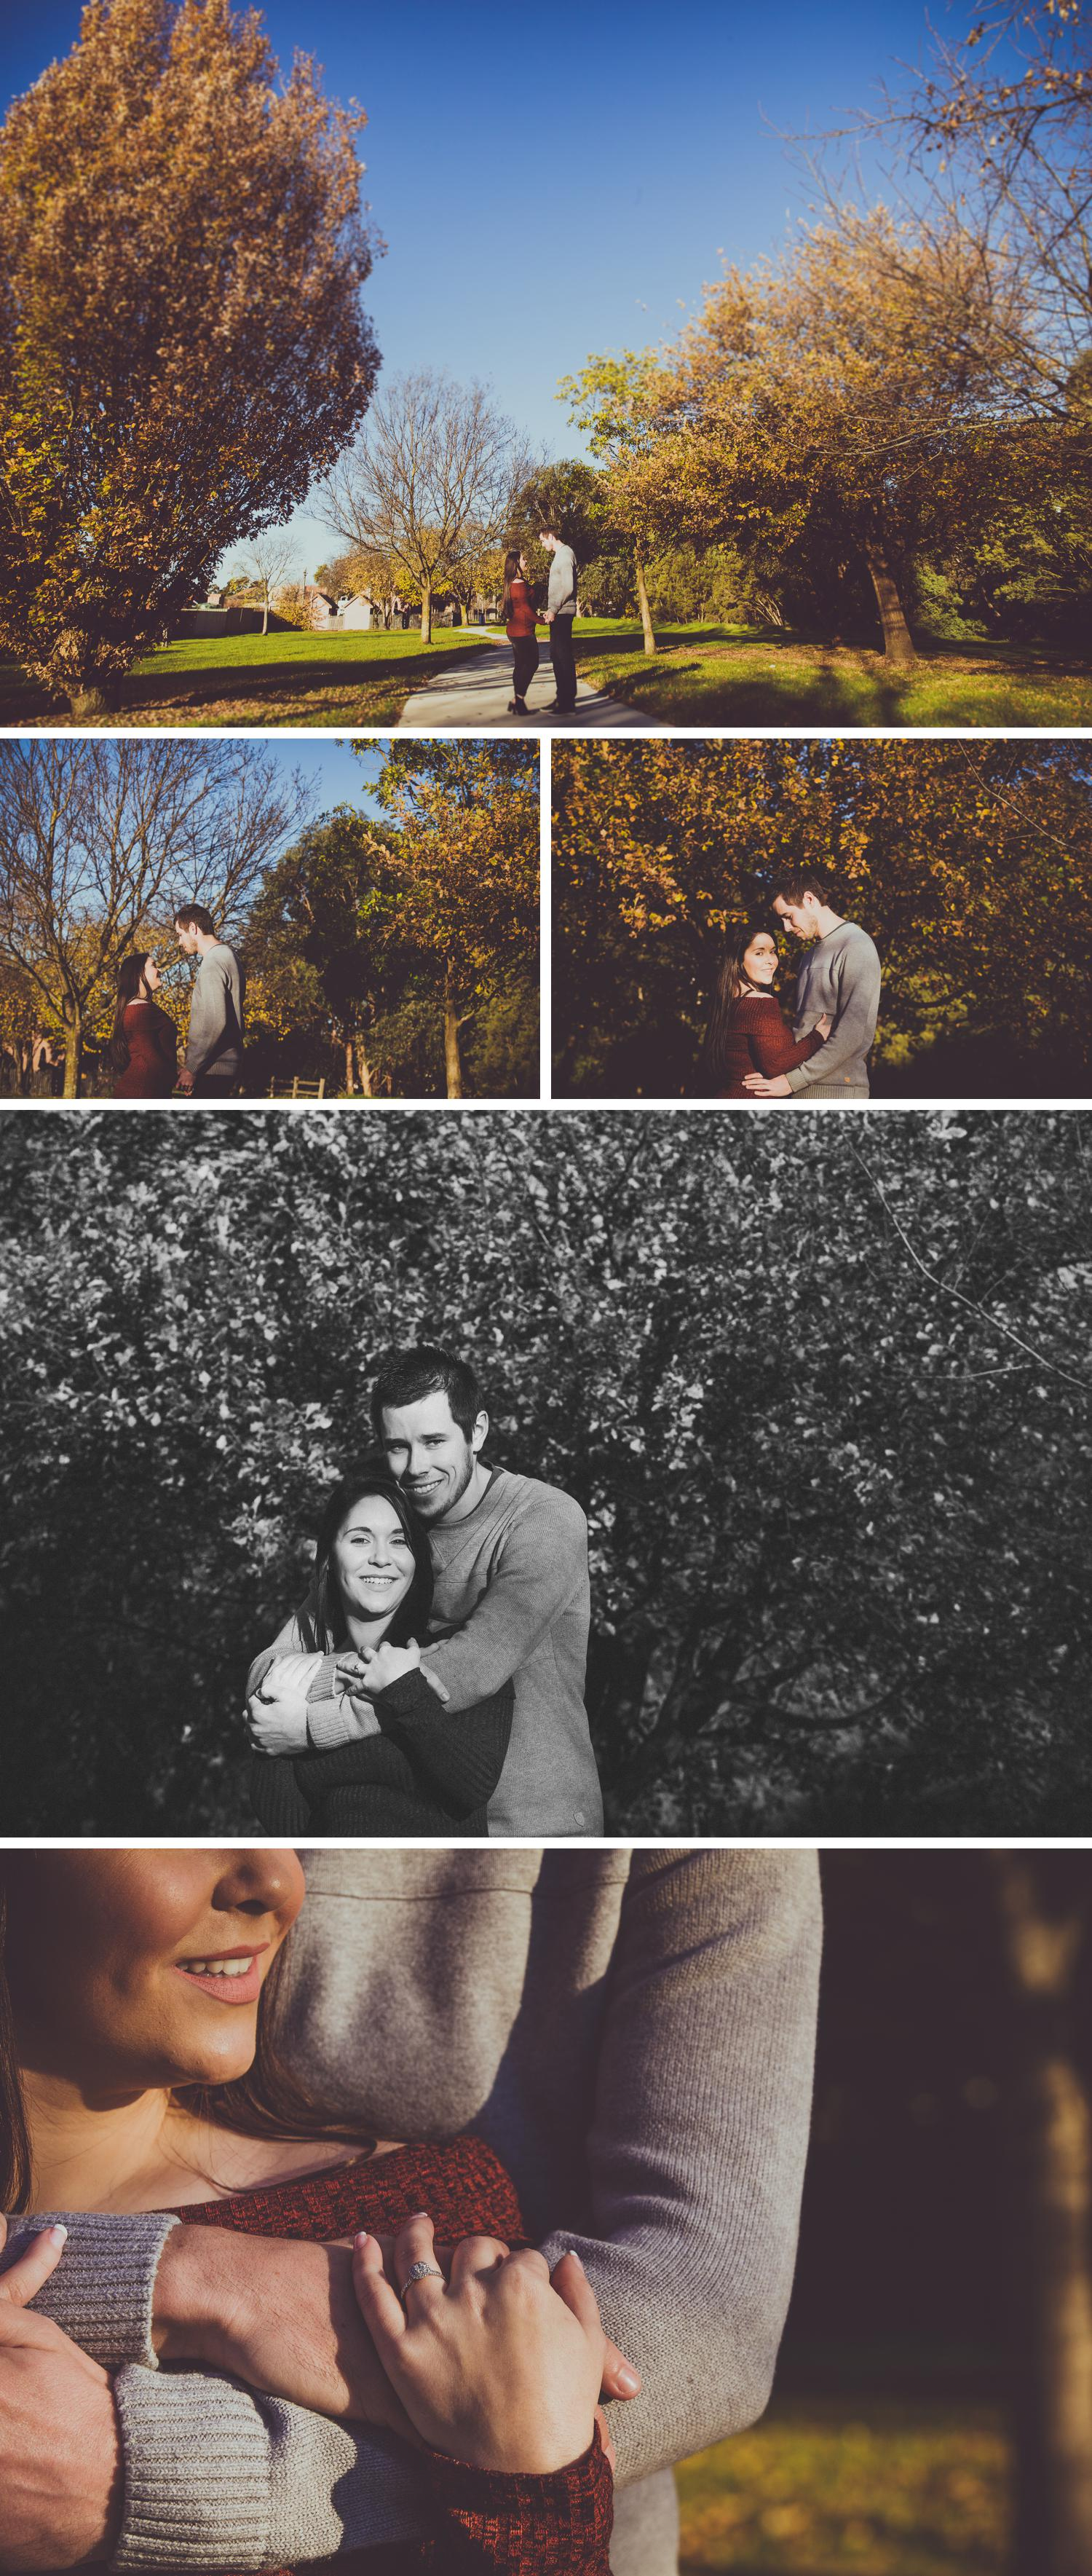 Park Photoshoot Engagement Shoot, Couple Embracing, Soft Light by Danae Studios